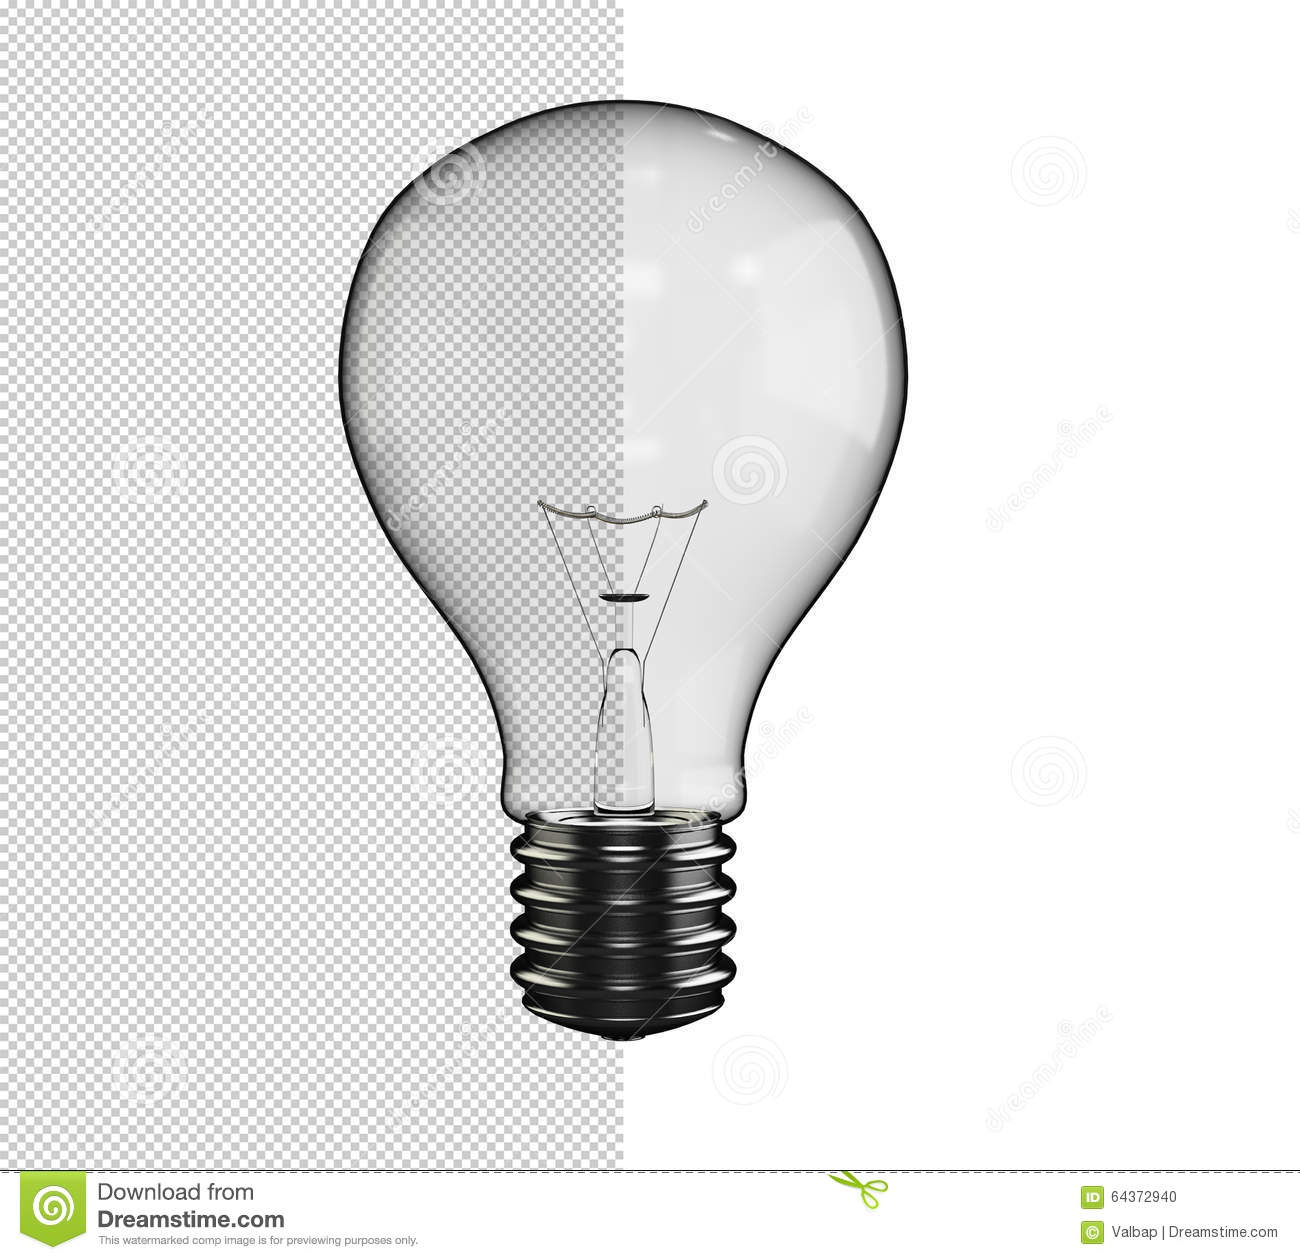 Lamp Light Bulb With Alpha Channel Transparent Background Stock